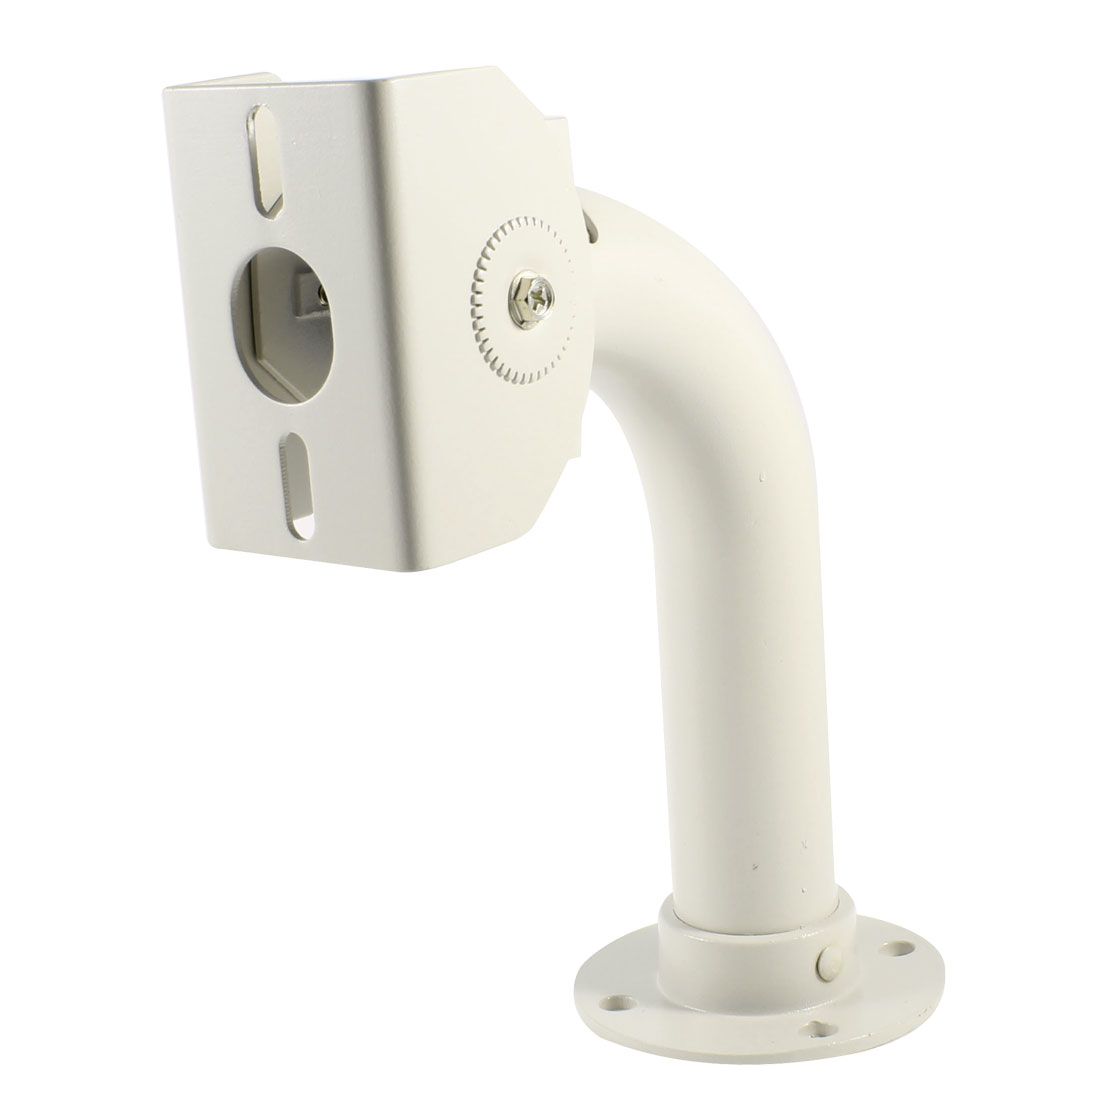 23cm High Off White Metal Wall Ceiling Mount Bracket Stand for CCTV DVR Camera